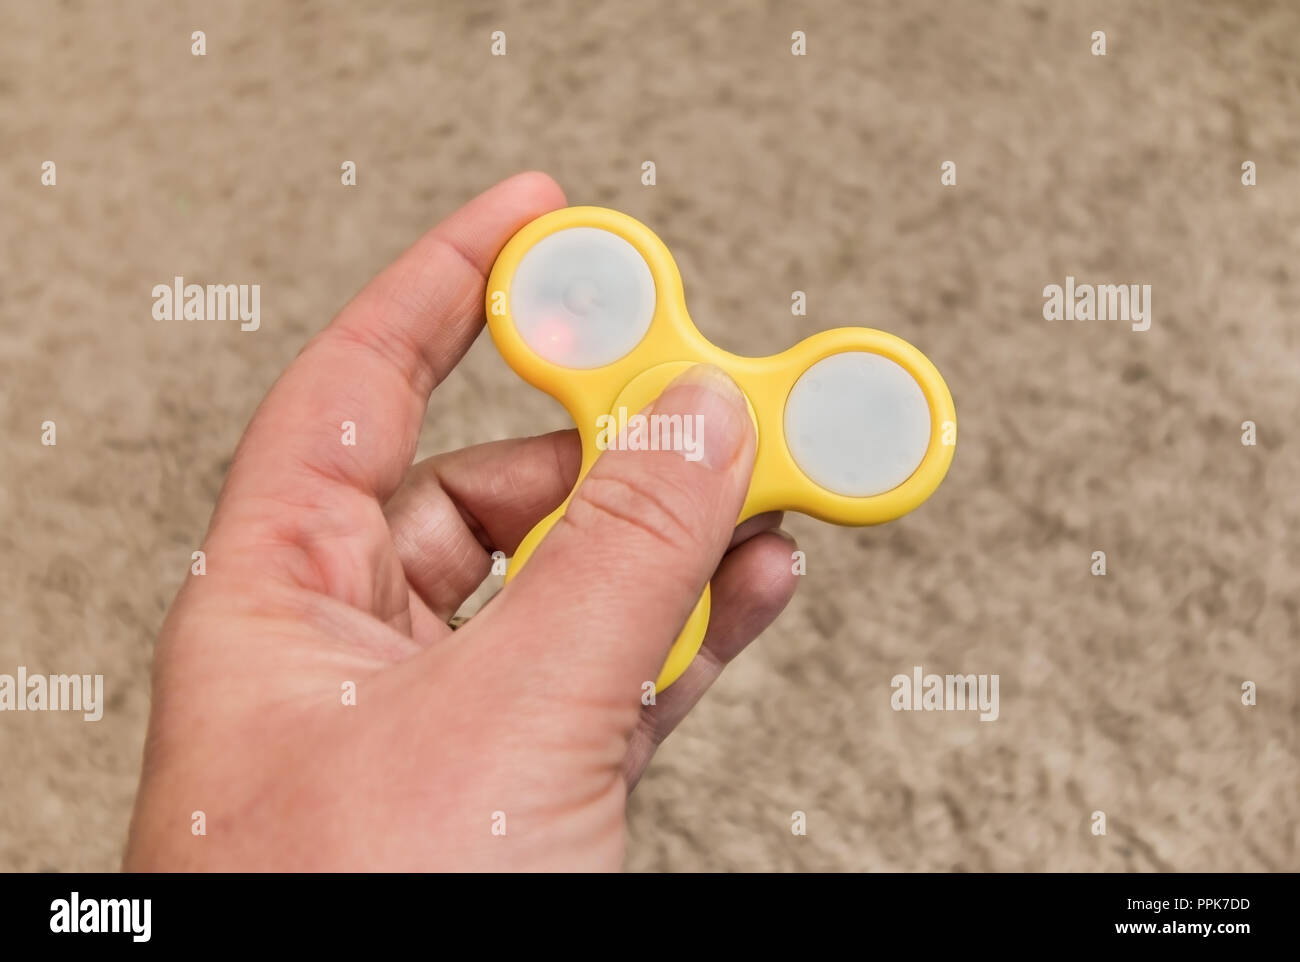 fidget spinner in a hand - not moving. - Stock Image